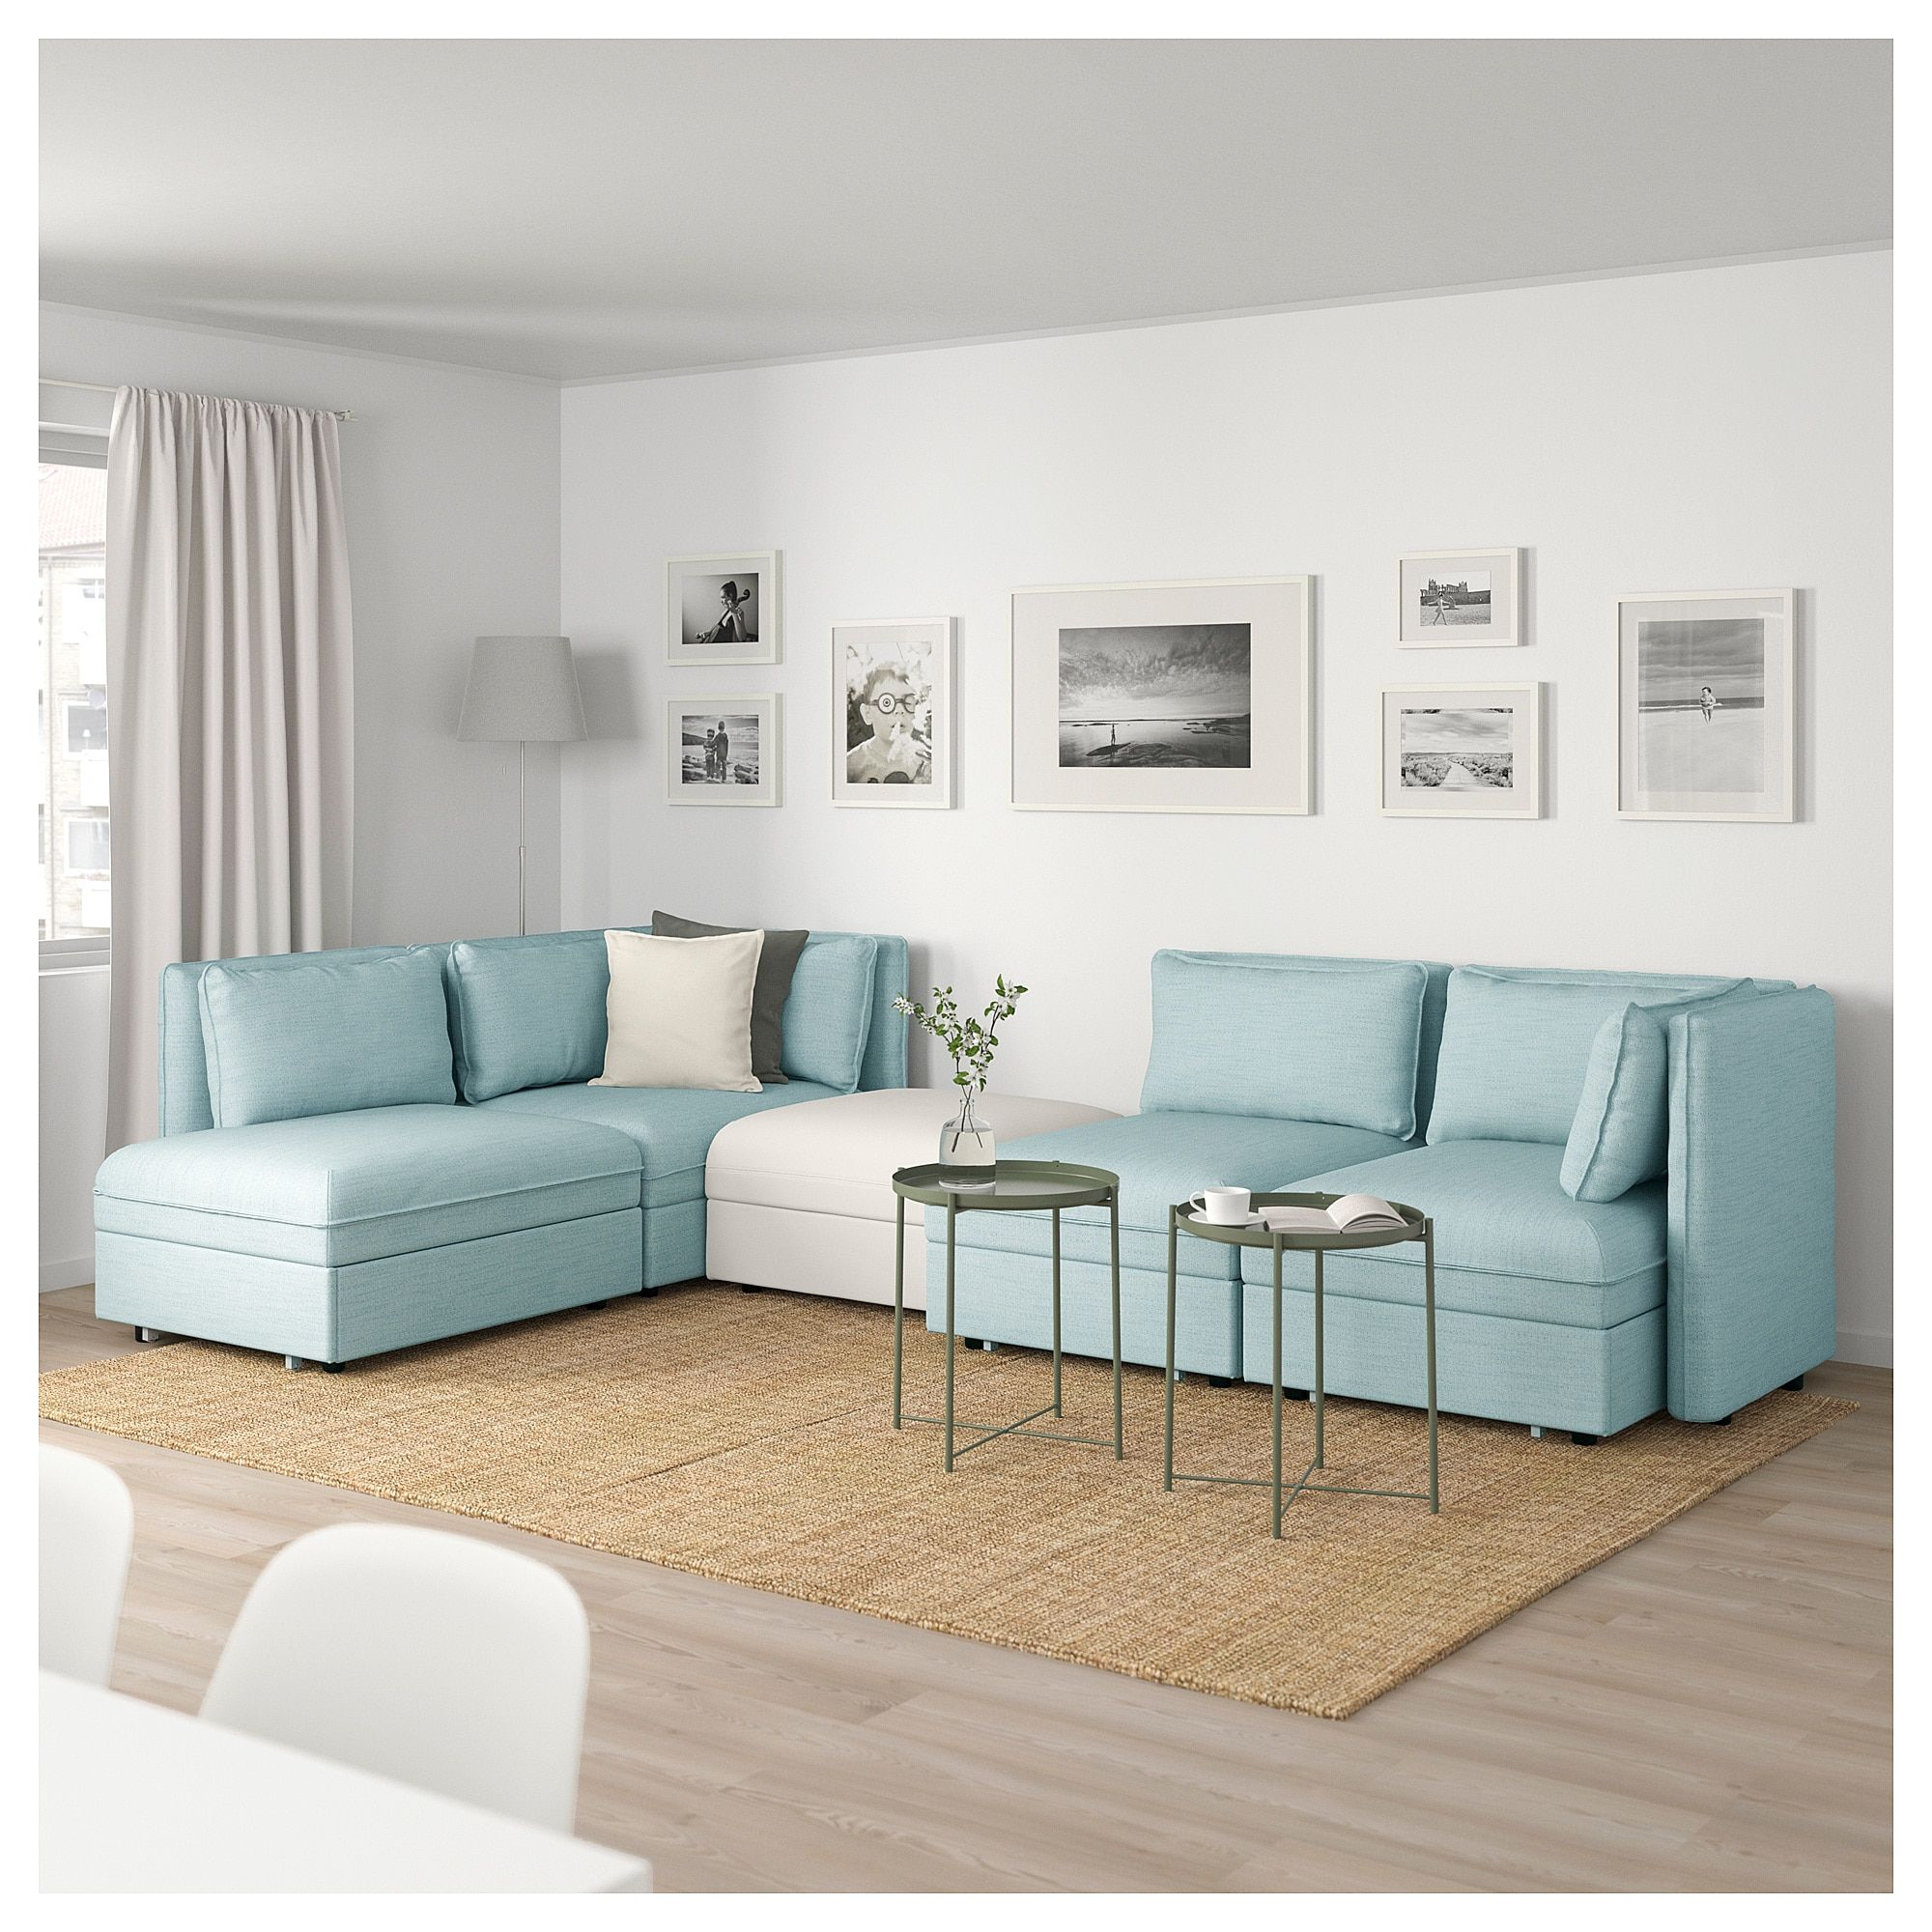 Vallentuna 4 Seat Modular Sofa With 3 Beds Ikea Vallentuna Mod Sofa 4 Seat W 3 Slpr Sections And Storage